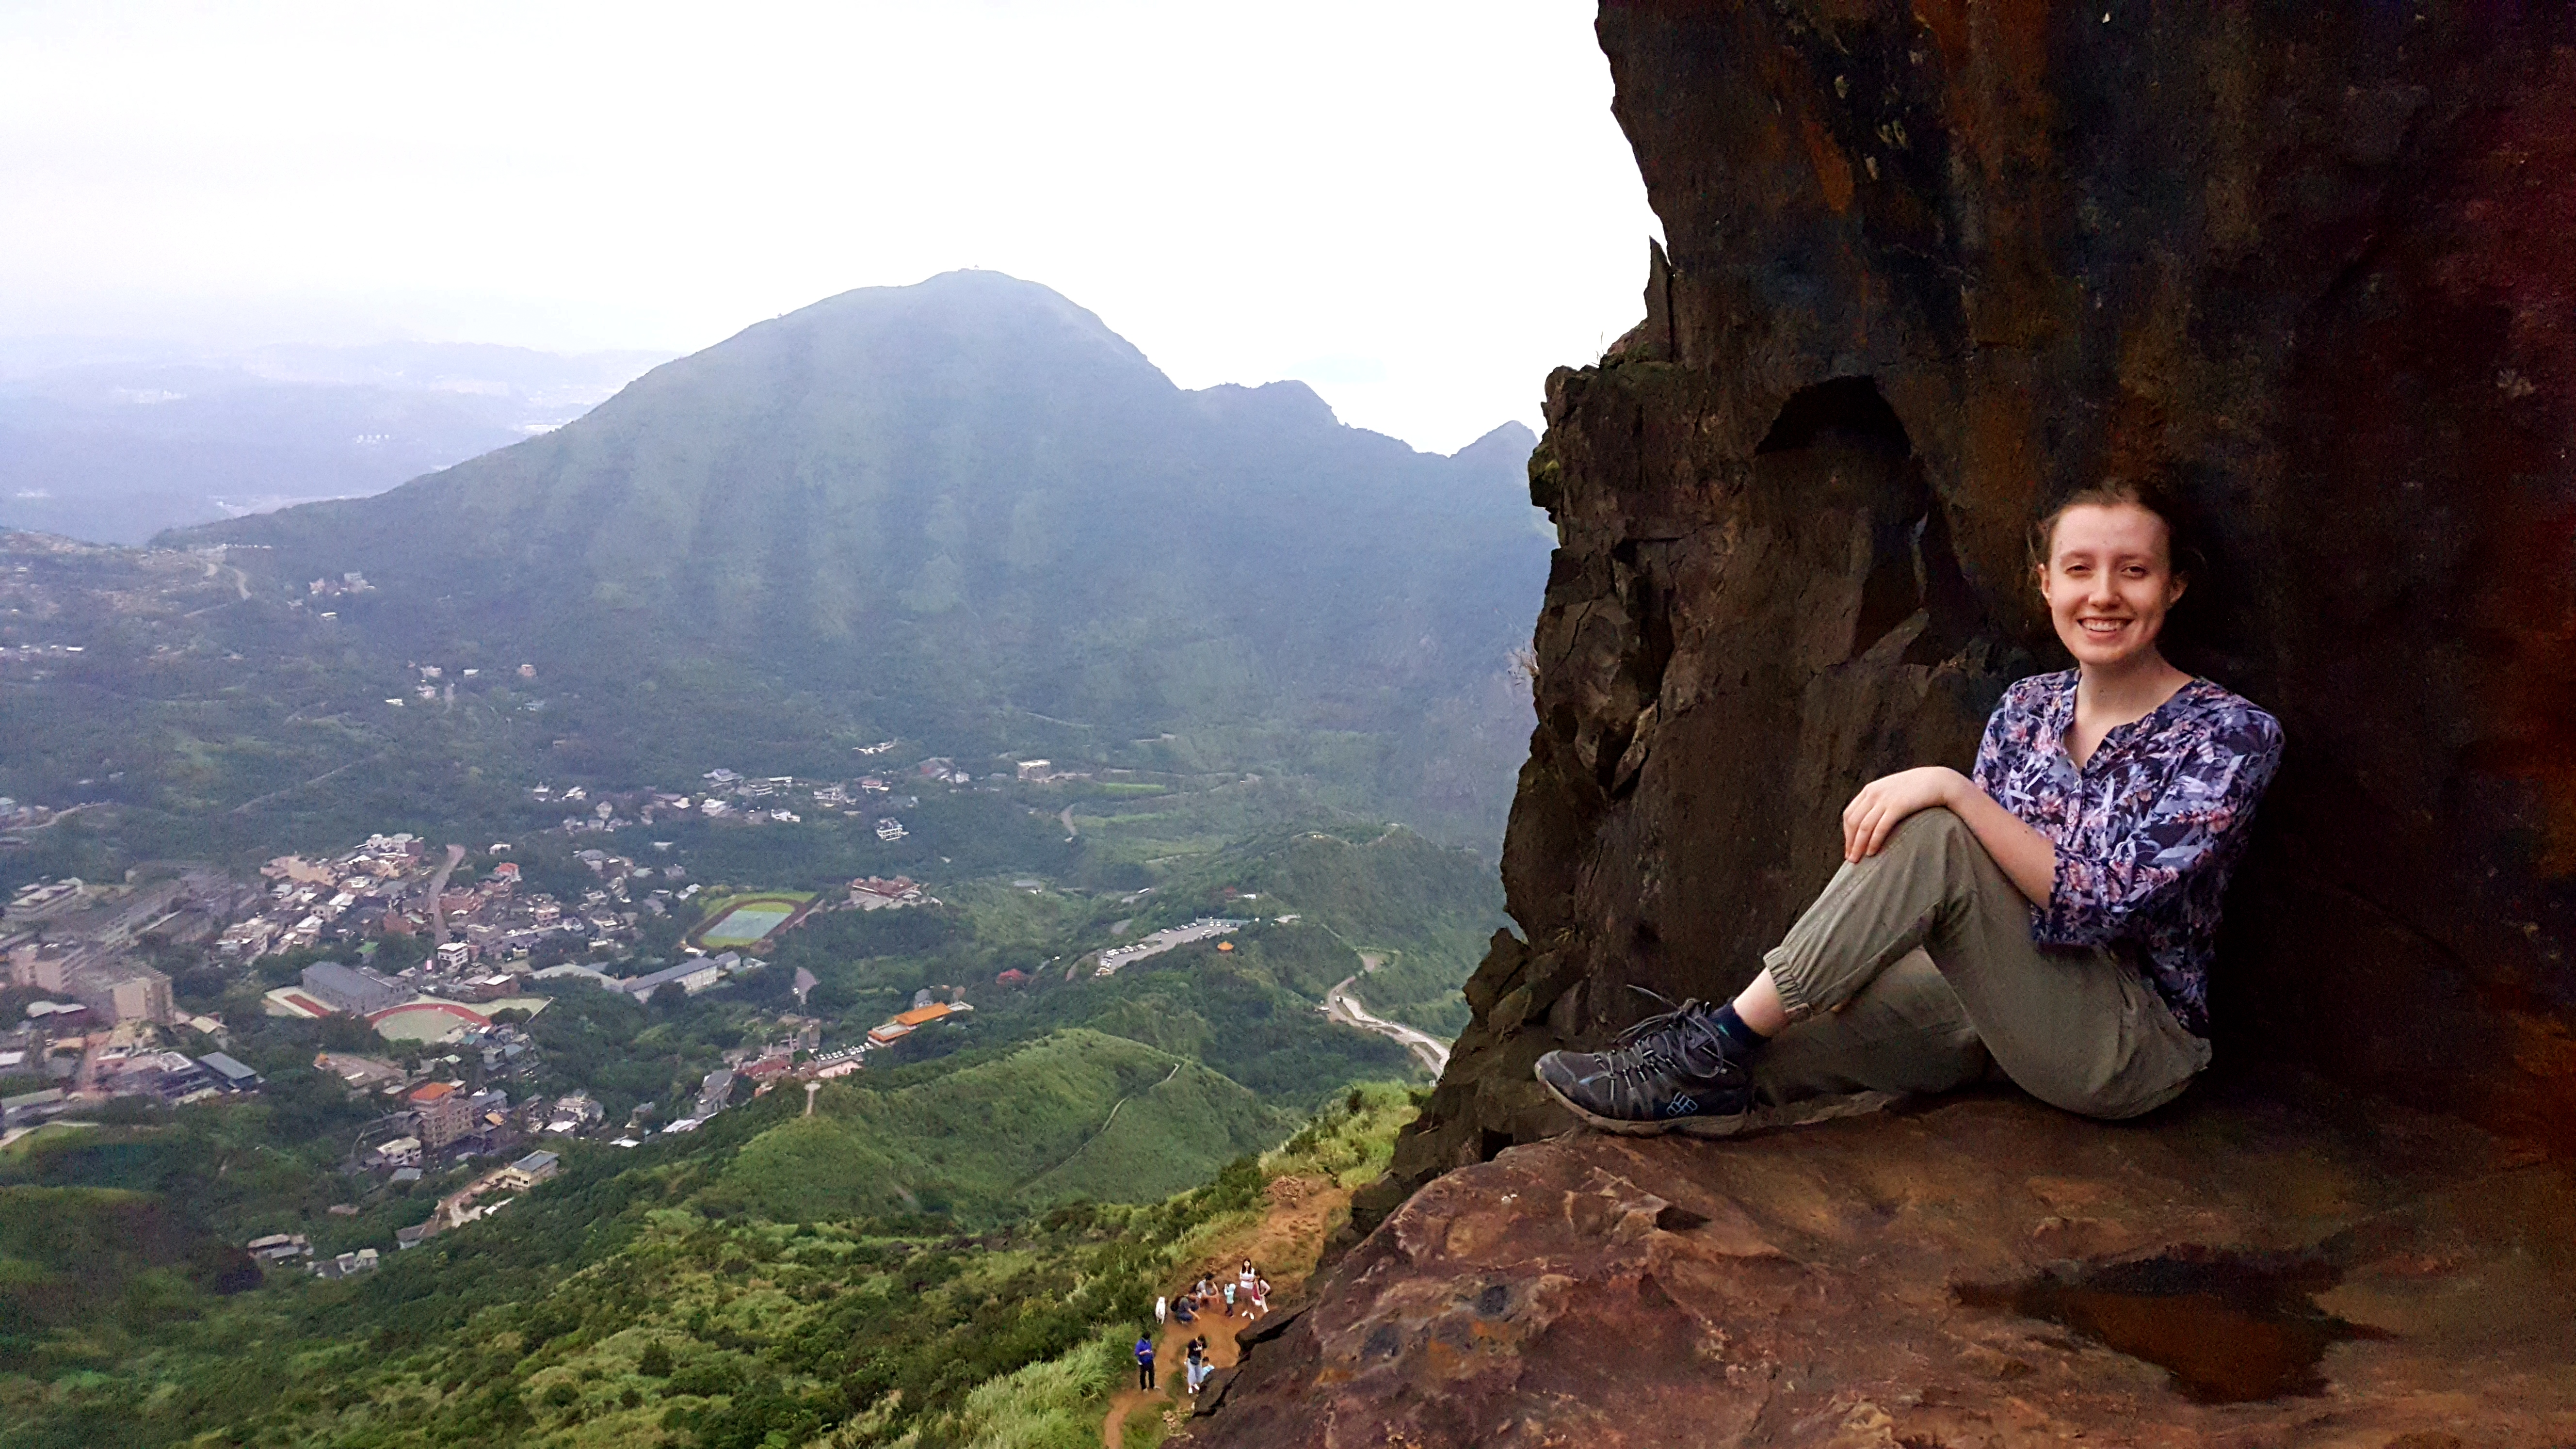 Enjoying the view after hiking Teapot Mountain (無耳茶壺山) in northern Taiwan.